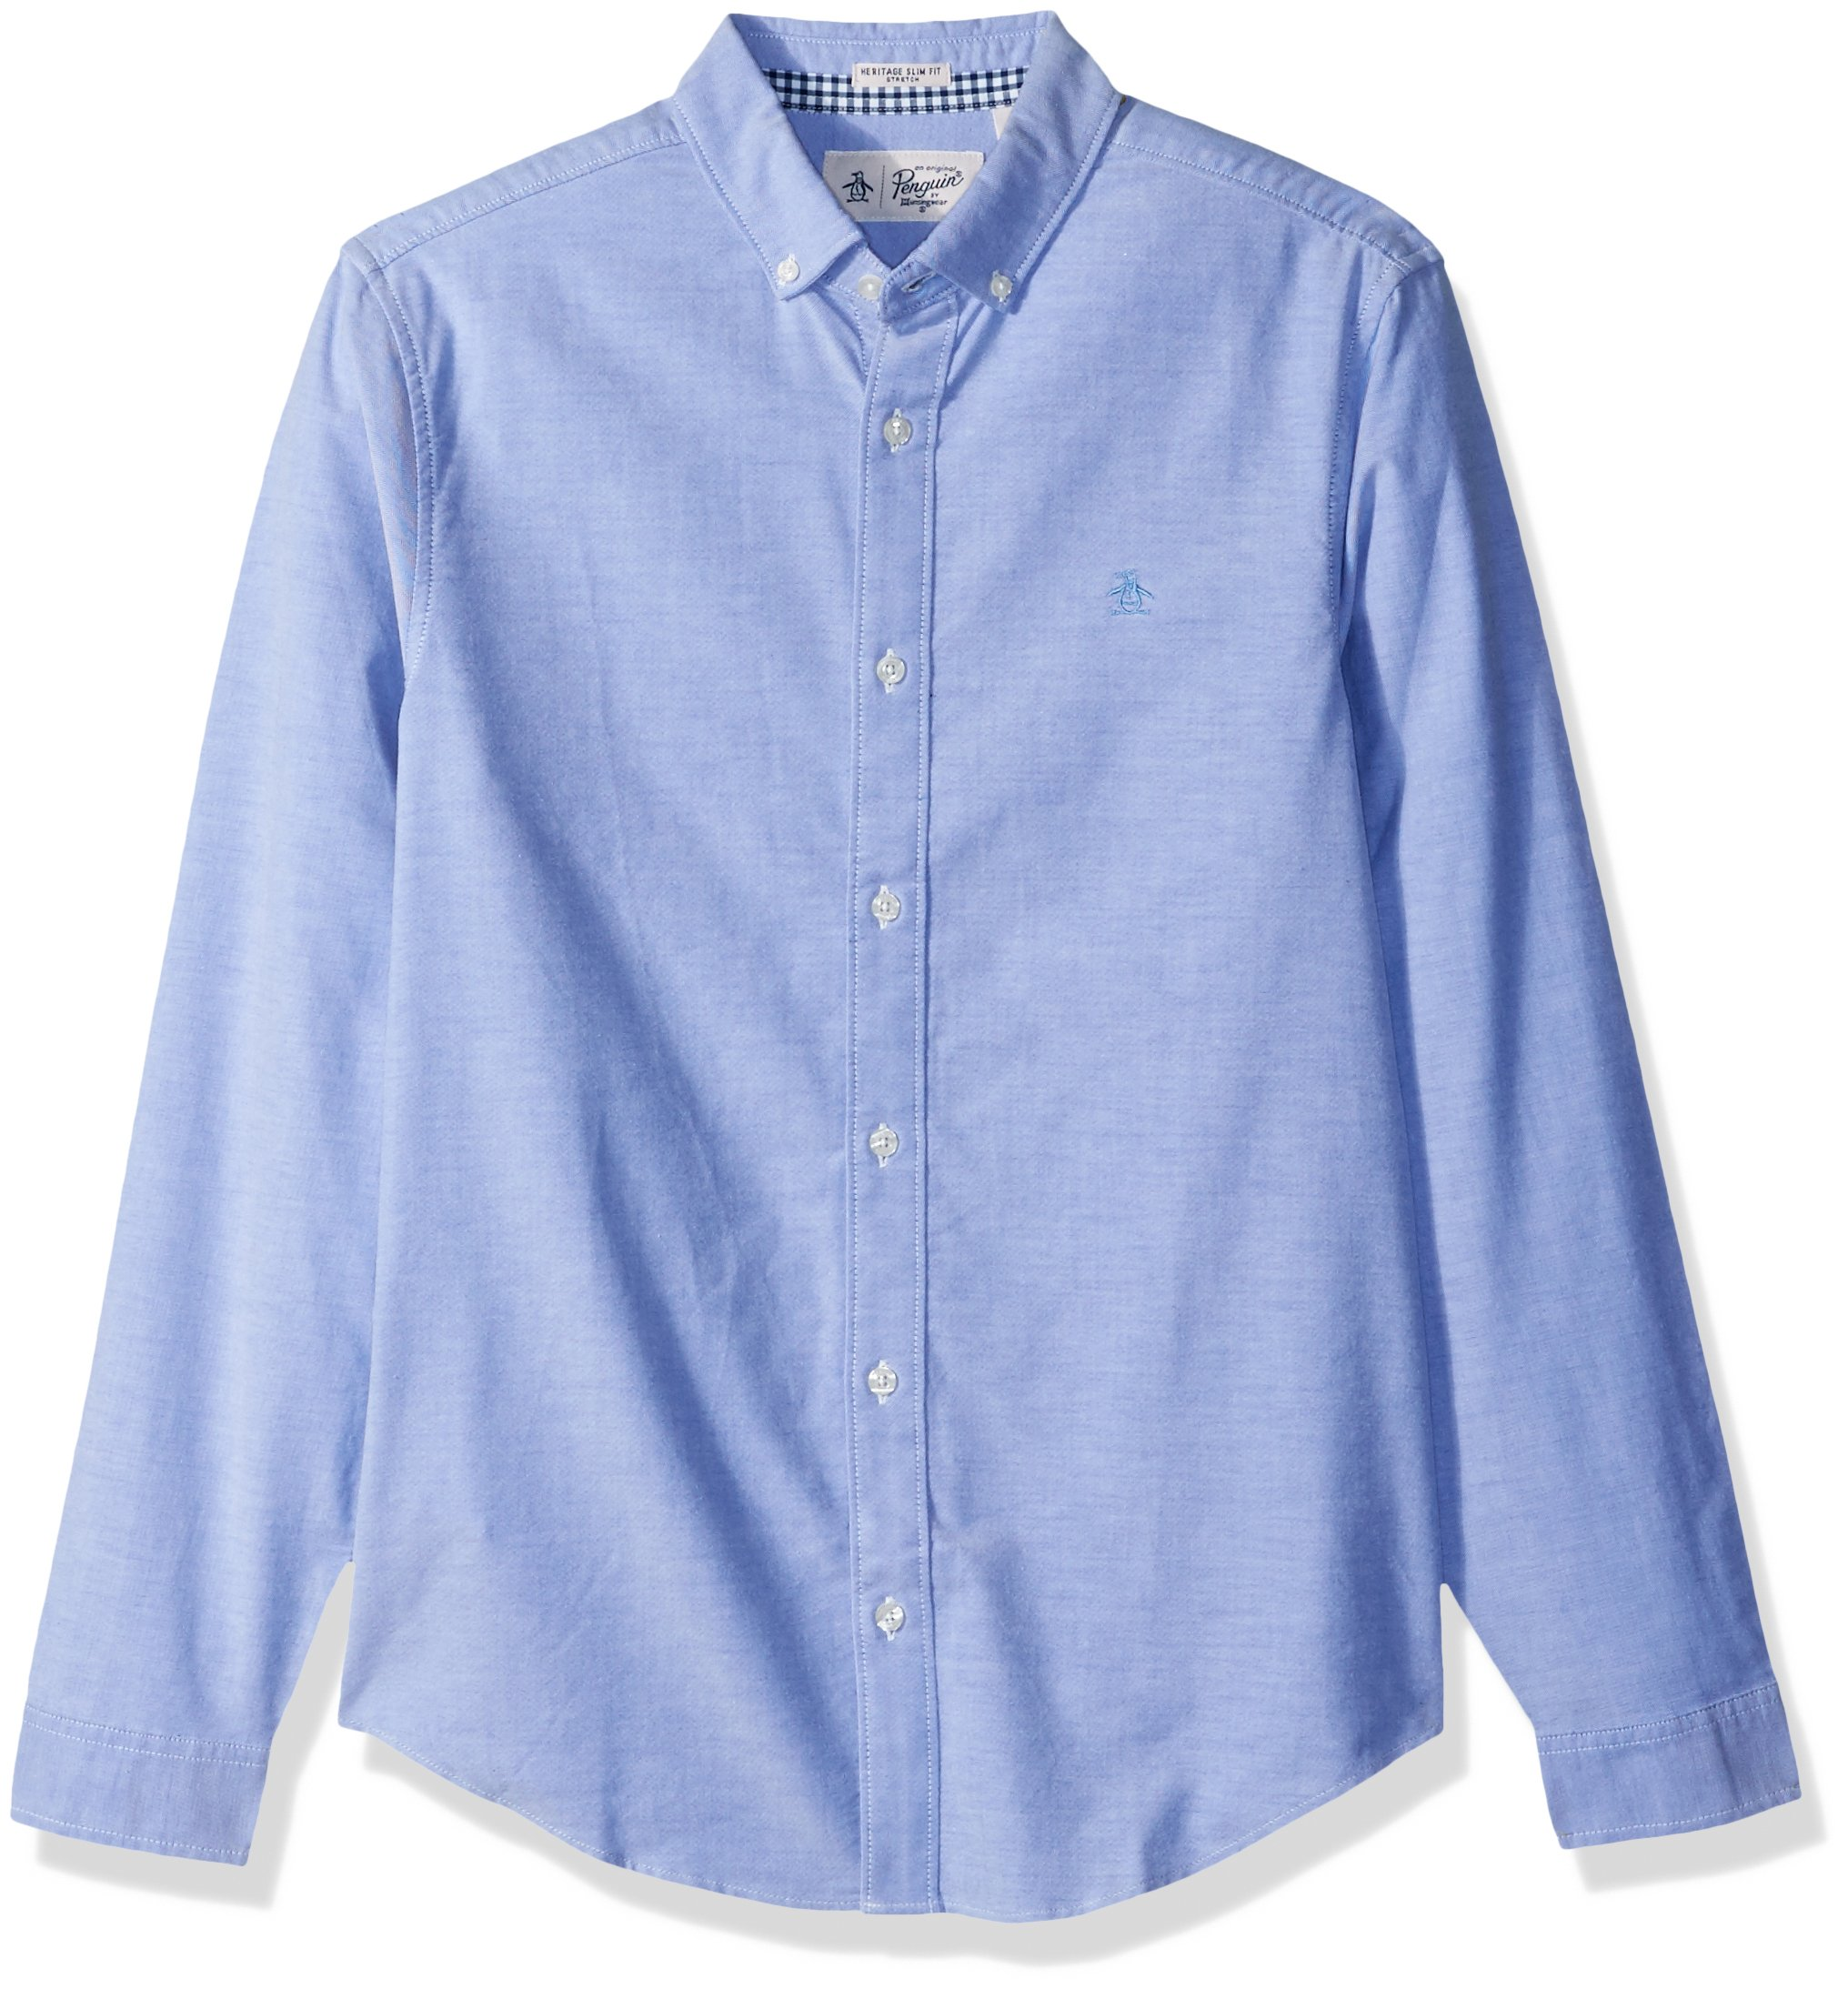 Original Penguin Men's New Long Sleeve Oxford Stretch Shirt, Amparo Blue, Large